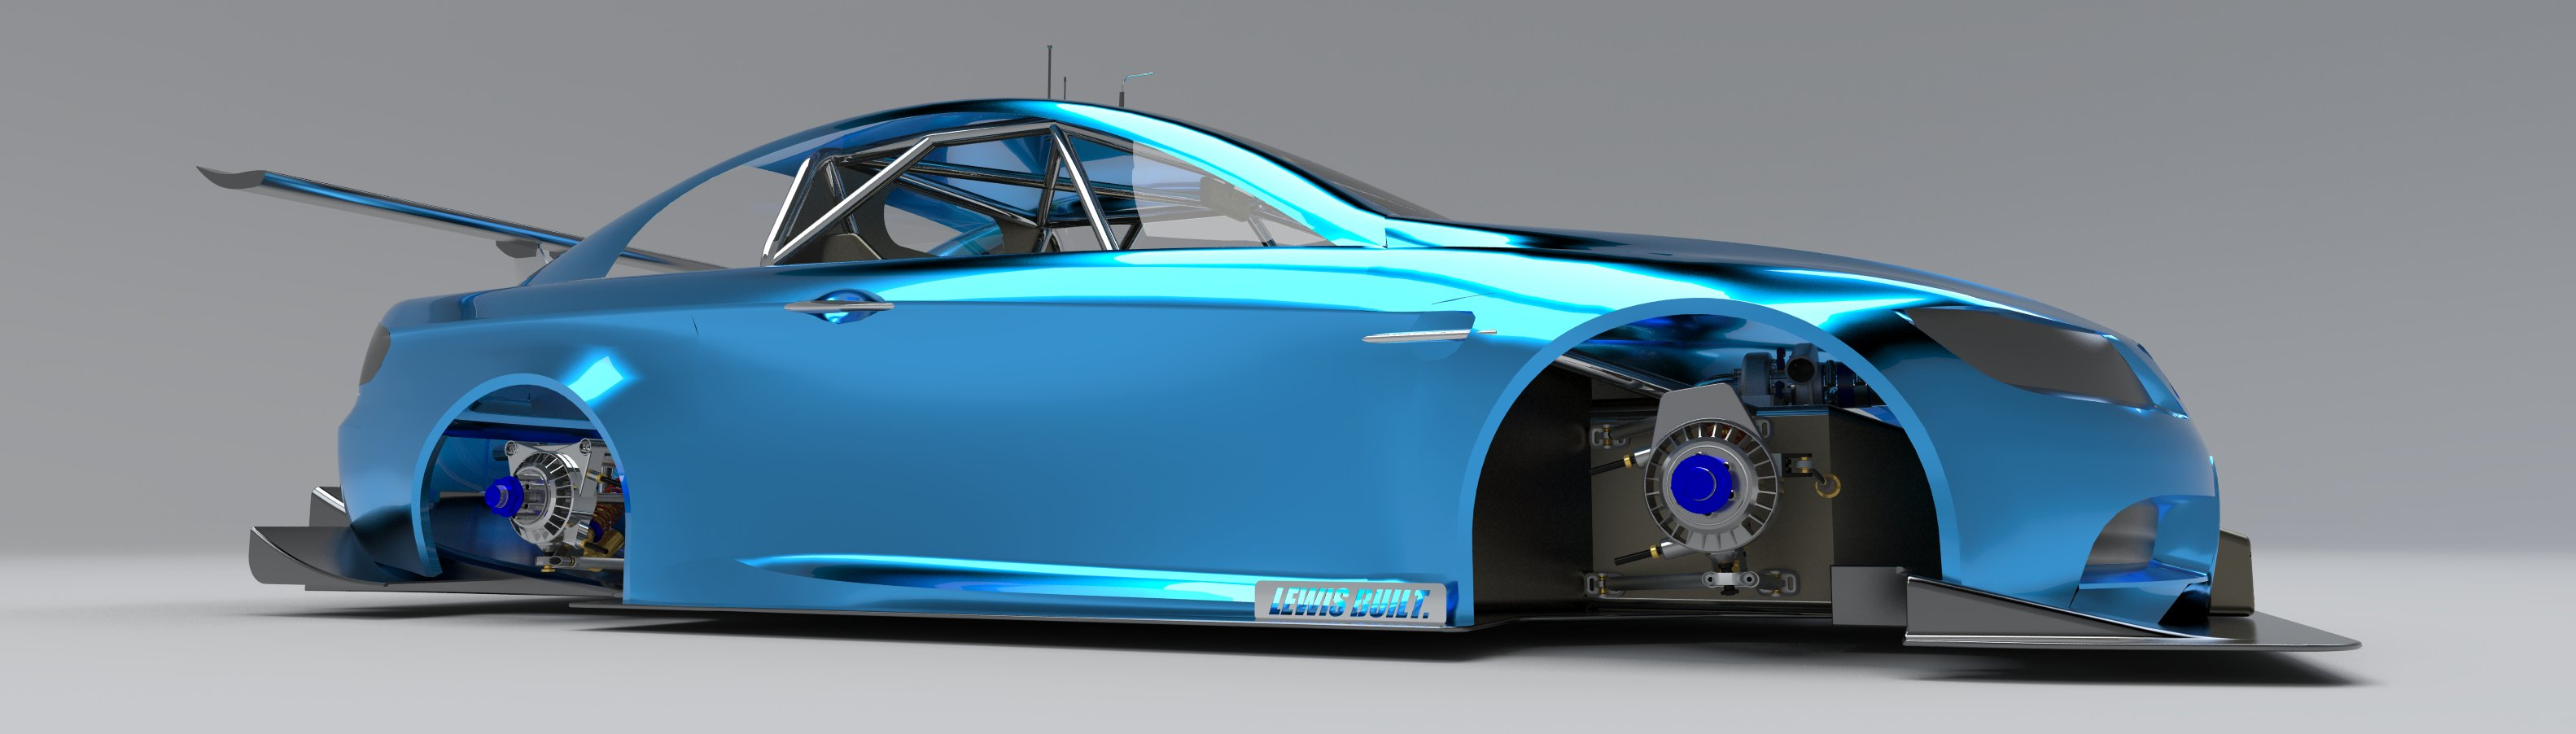 PEASNELL RACING DESIGN _ CONCEPT SKETCH _BMW_RACECAR (2)